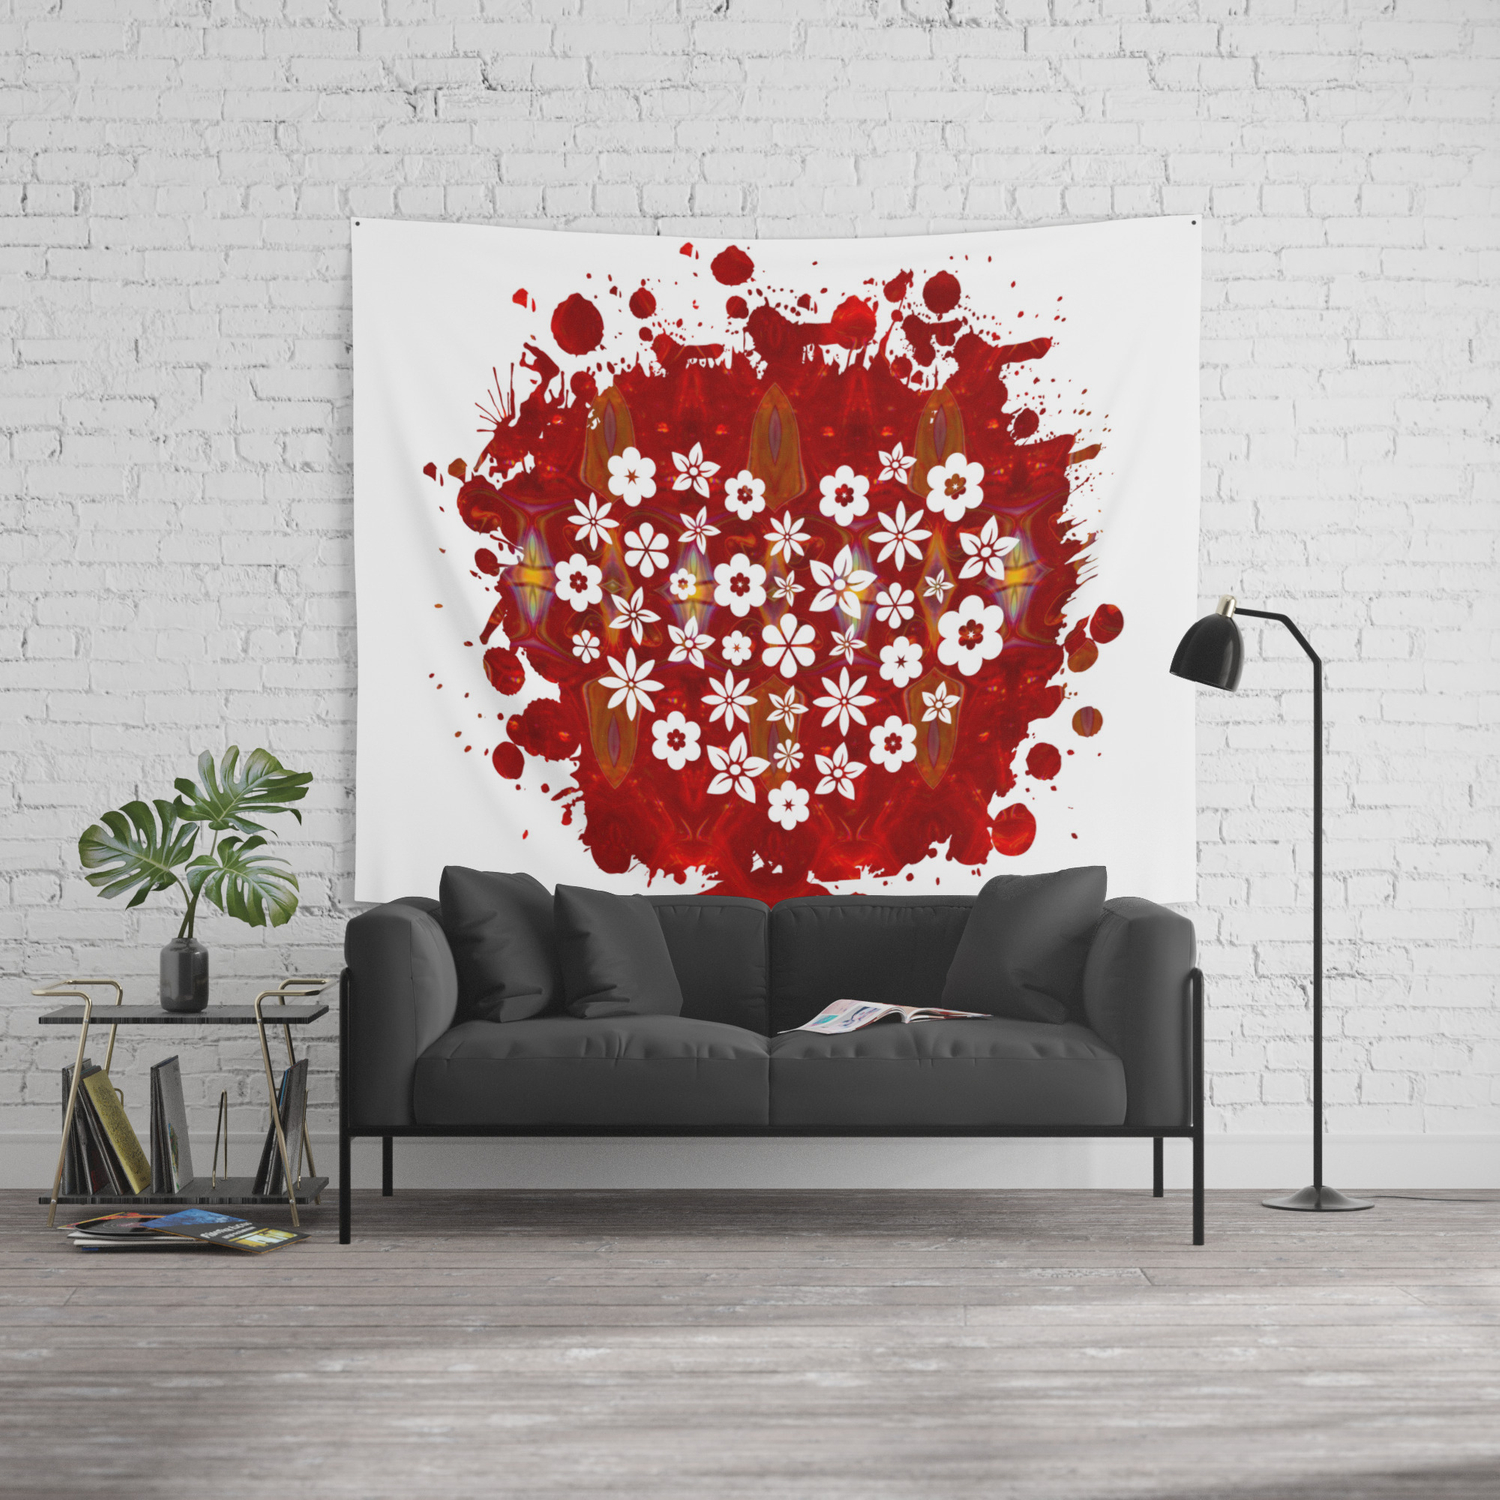 Red Heart Of Flowers Fantasy Designs Abstract Holiday Art Wall Tapestry By Owfotografik Society6